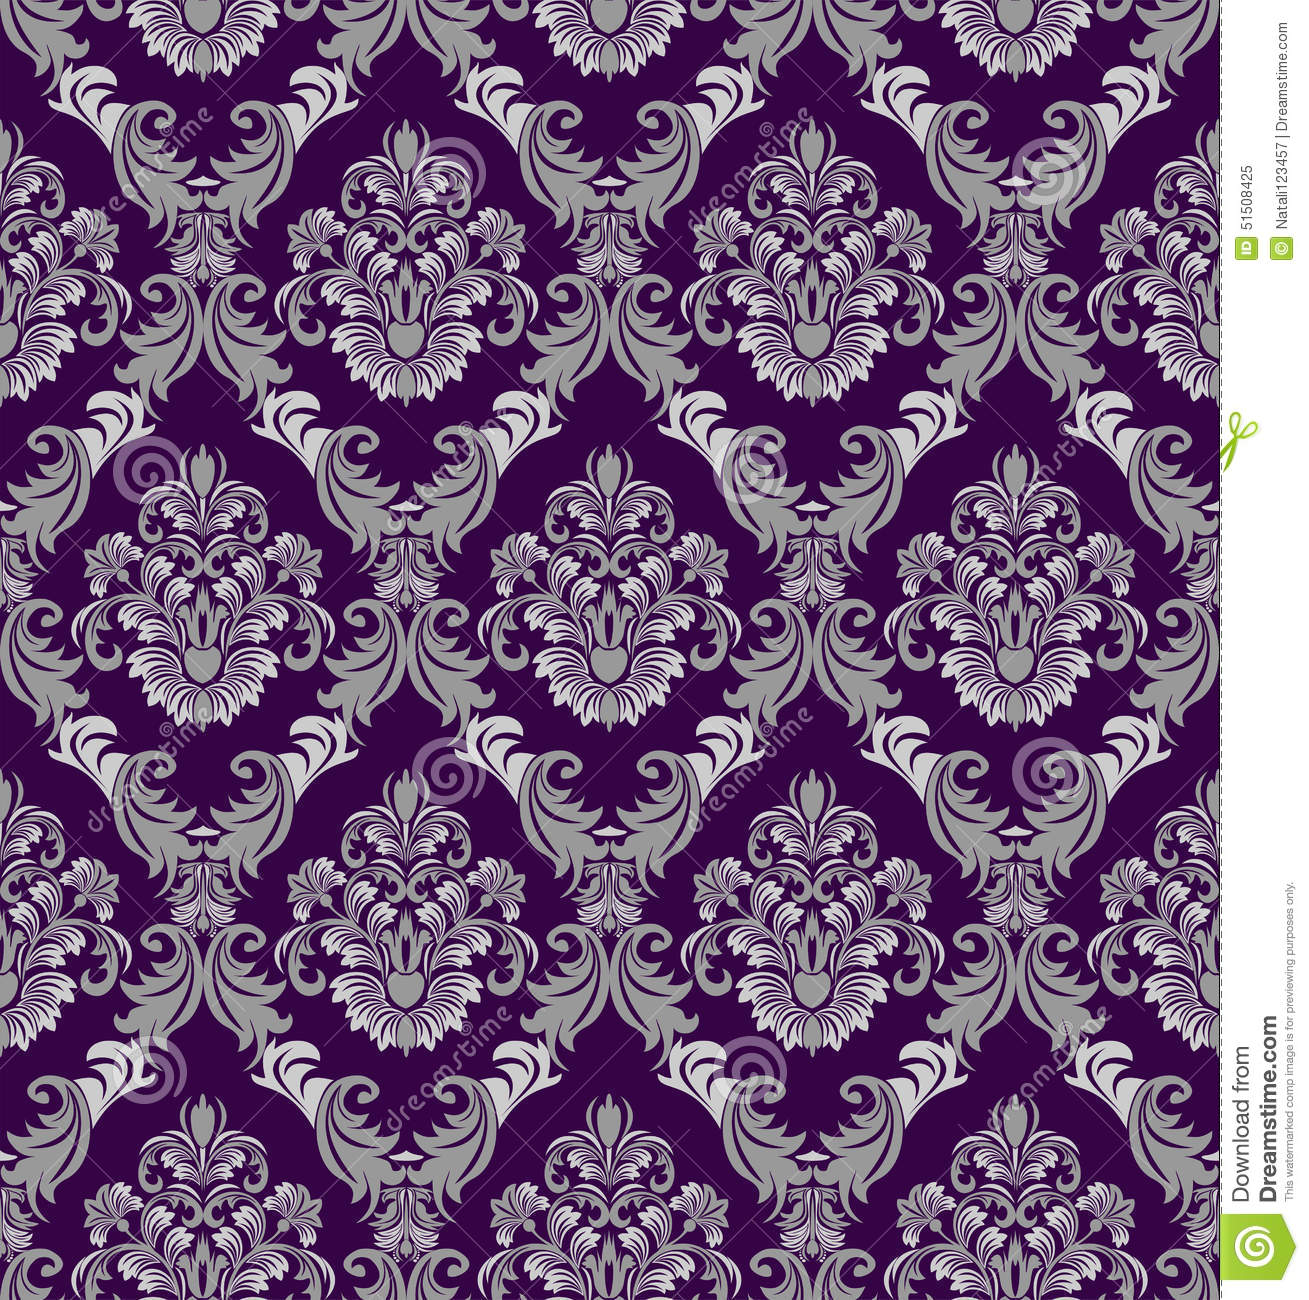 Seamless Damask Wallpaper In Victorian Style For Design